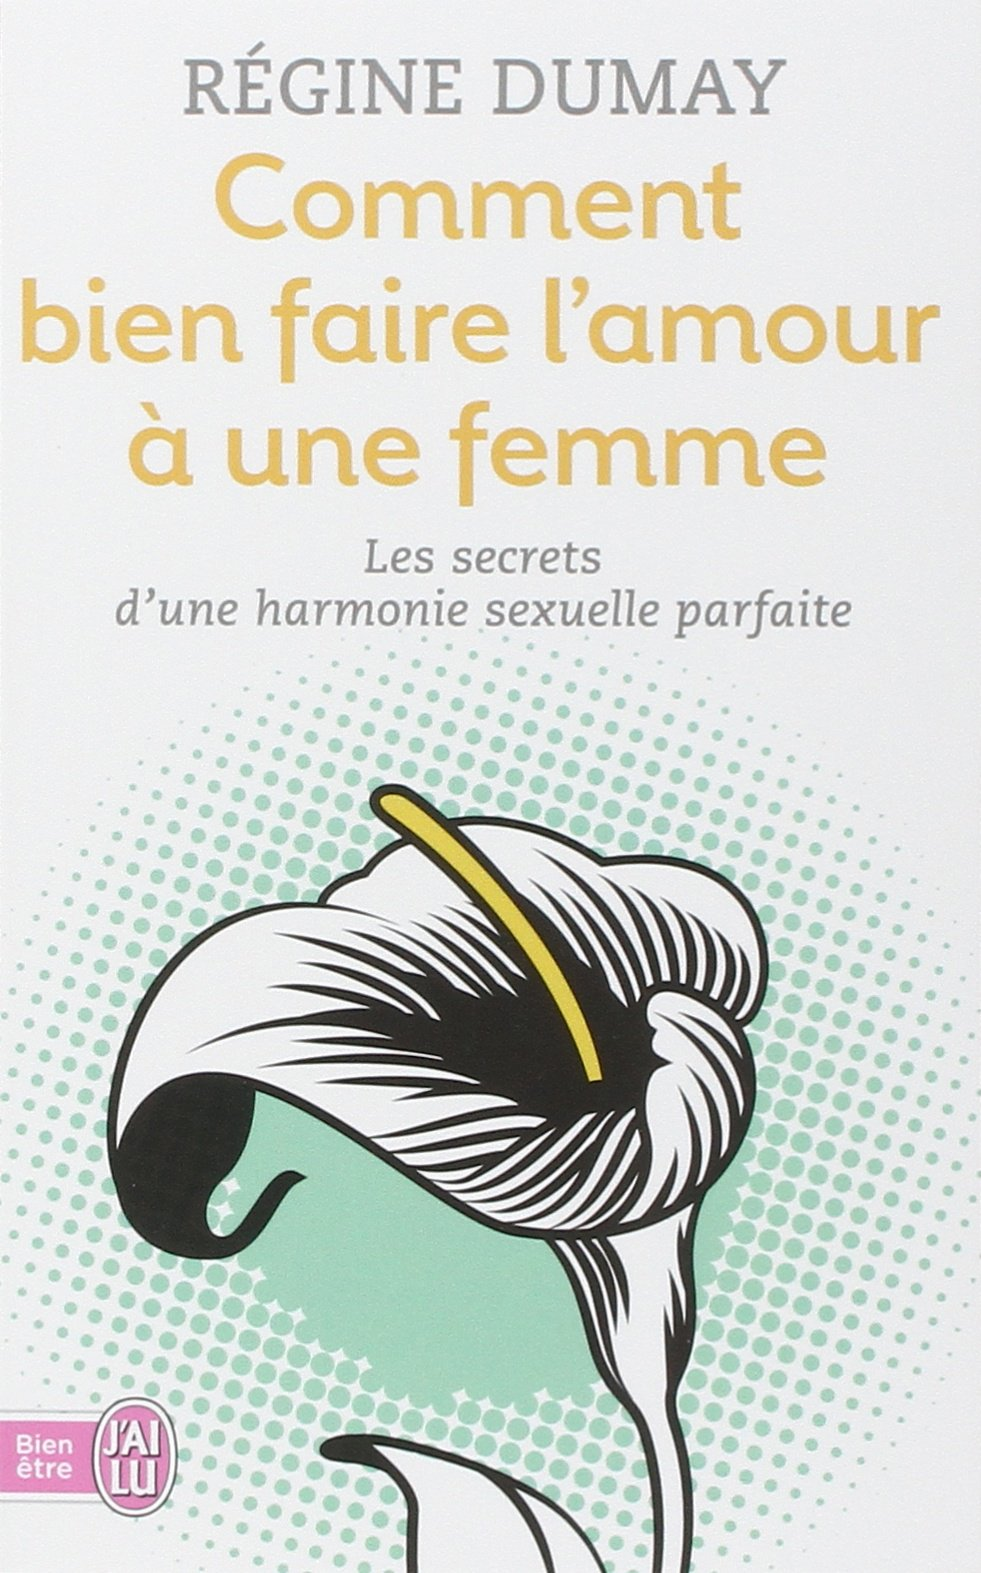 Bien faire amour femme [PUNIQRANDLINE-(au-dating-names.txt) 25